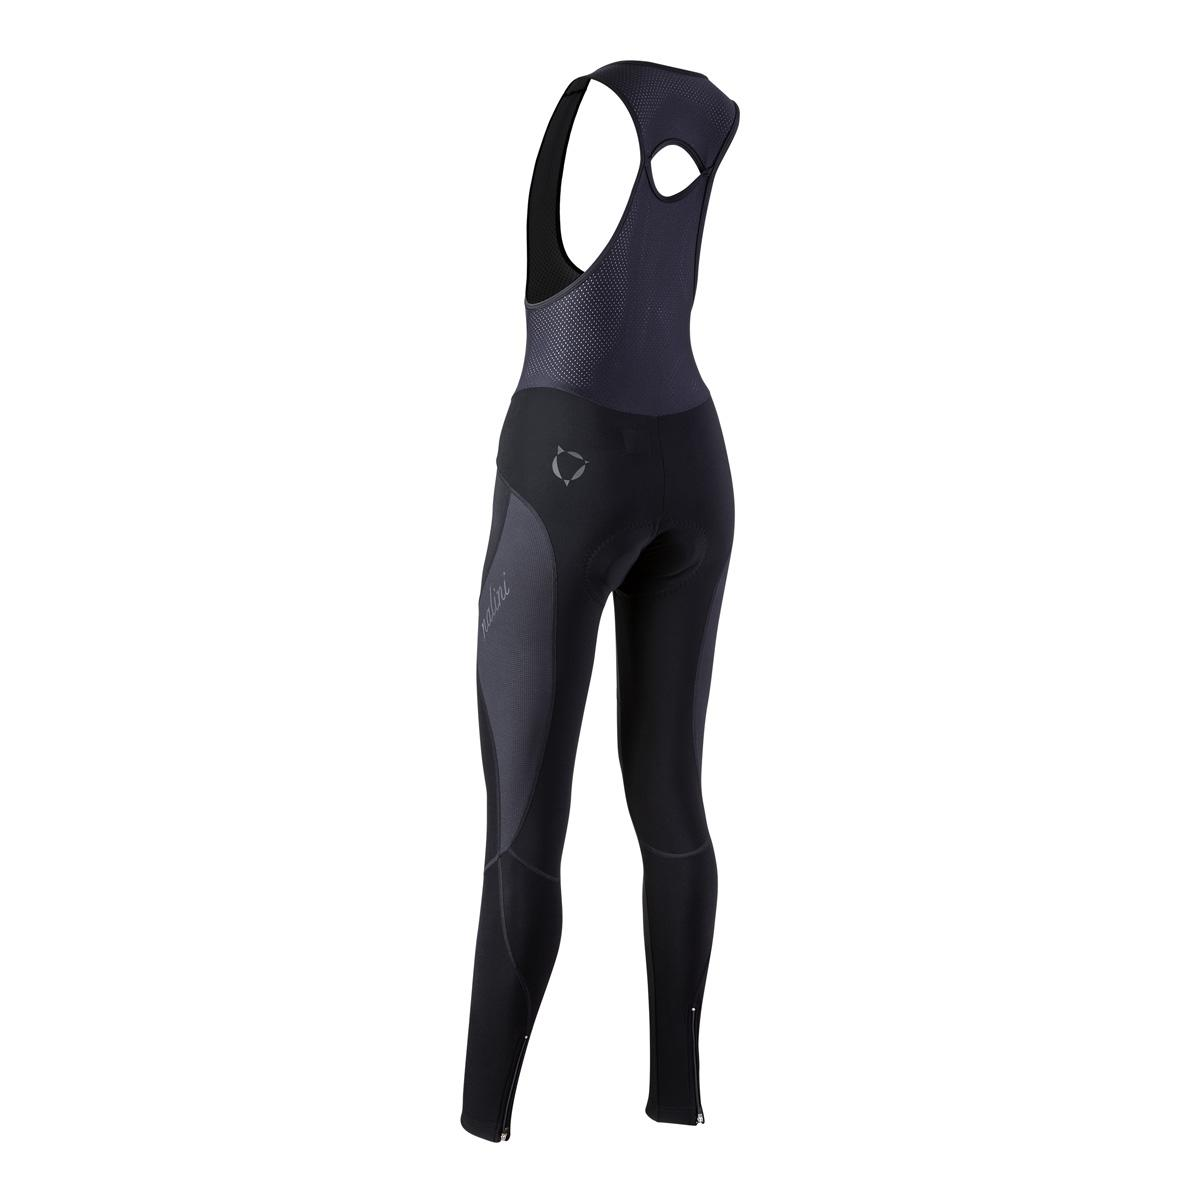 Afbeelding Nalini Fietsbroek lang met bretels Dames Zwart  - AIW LADY BIB TIGHT 2.0  WINTER BIB TIGHT BLACK